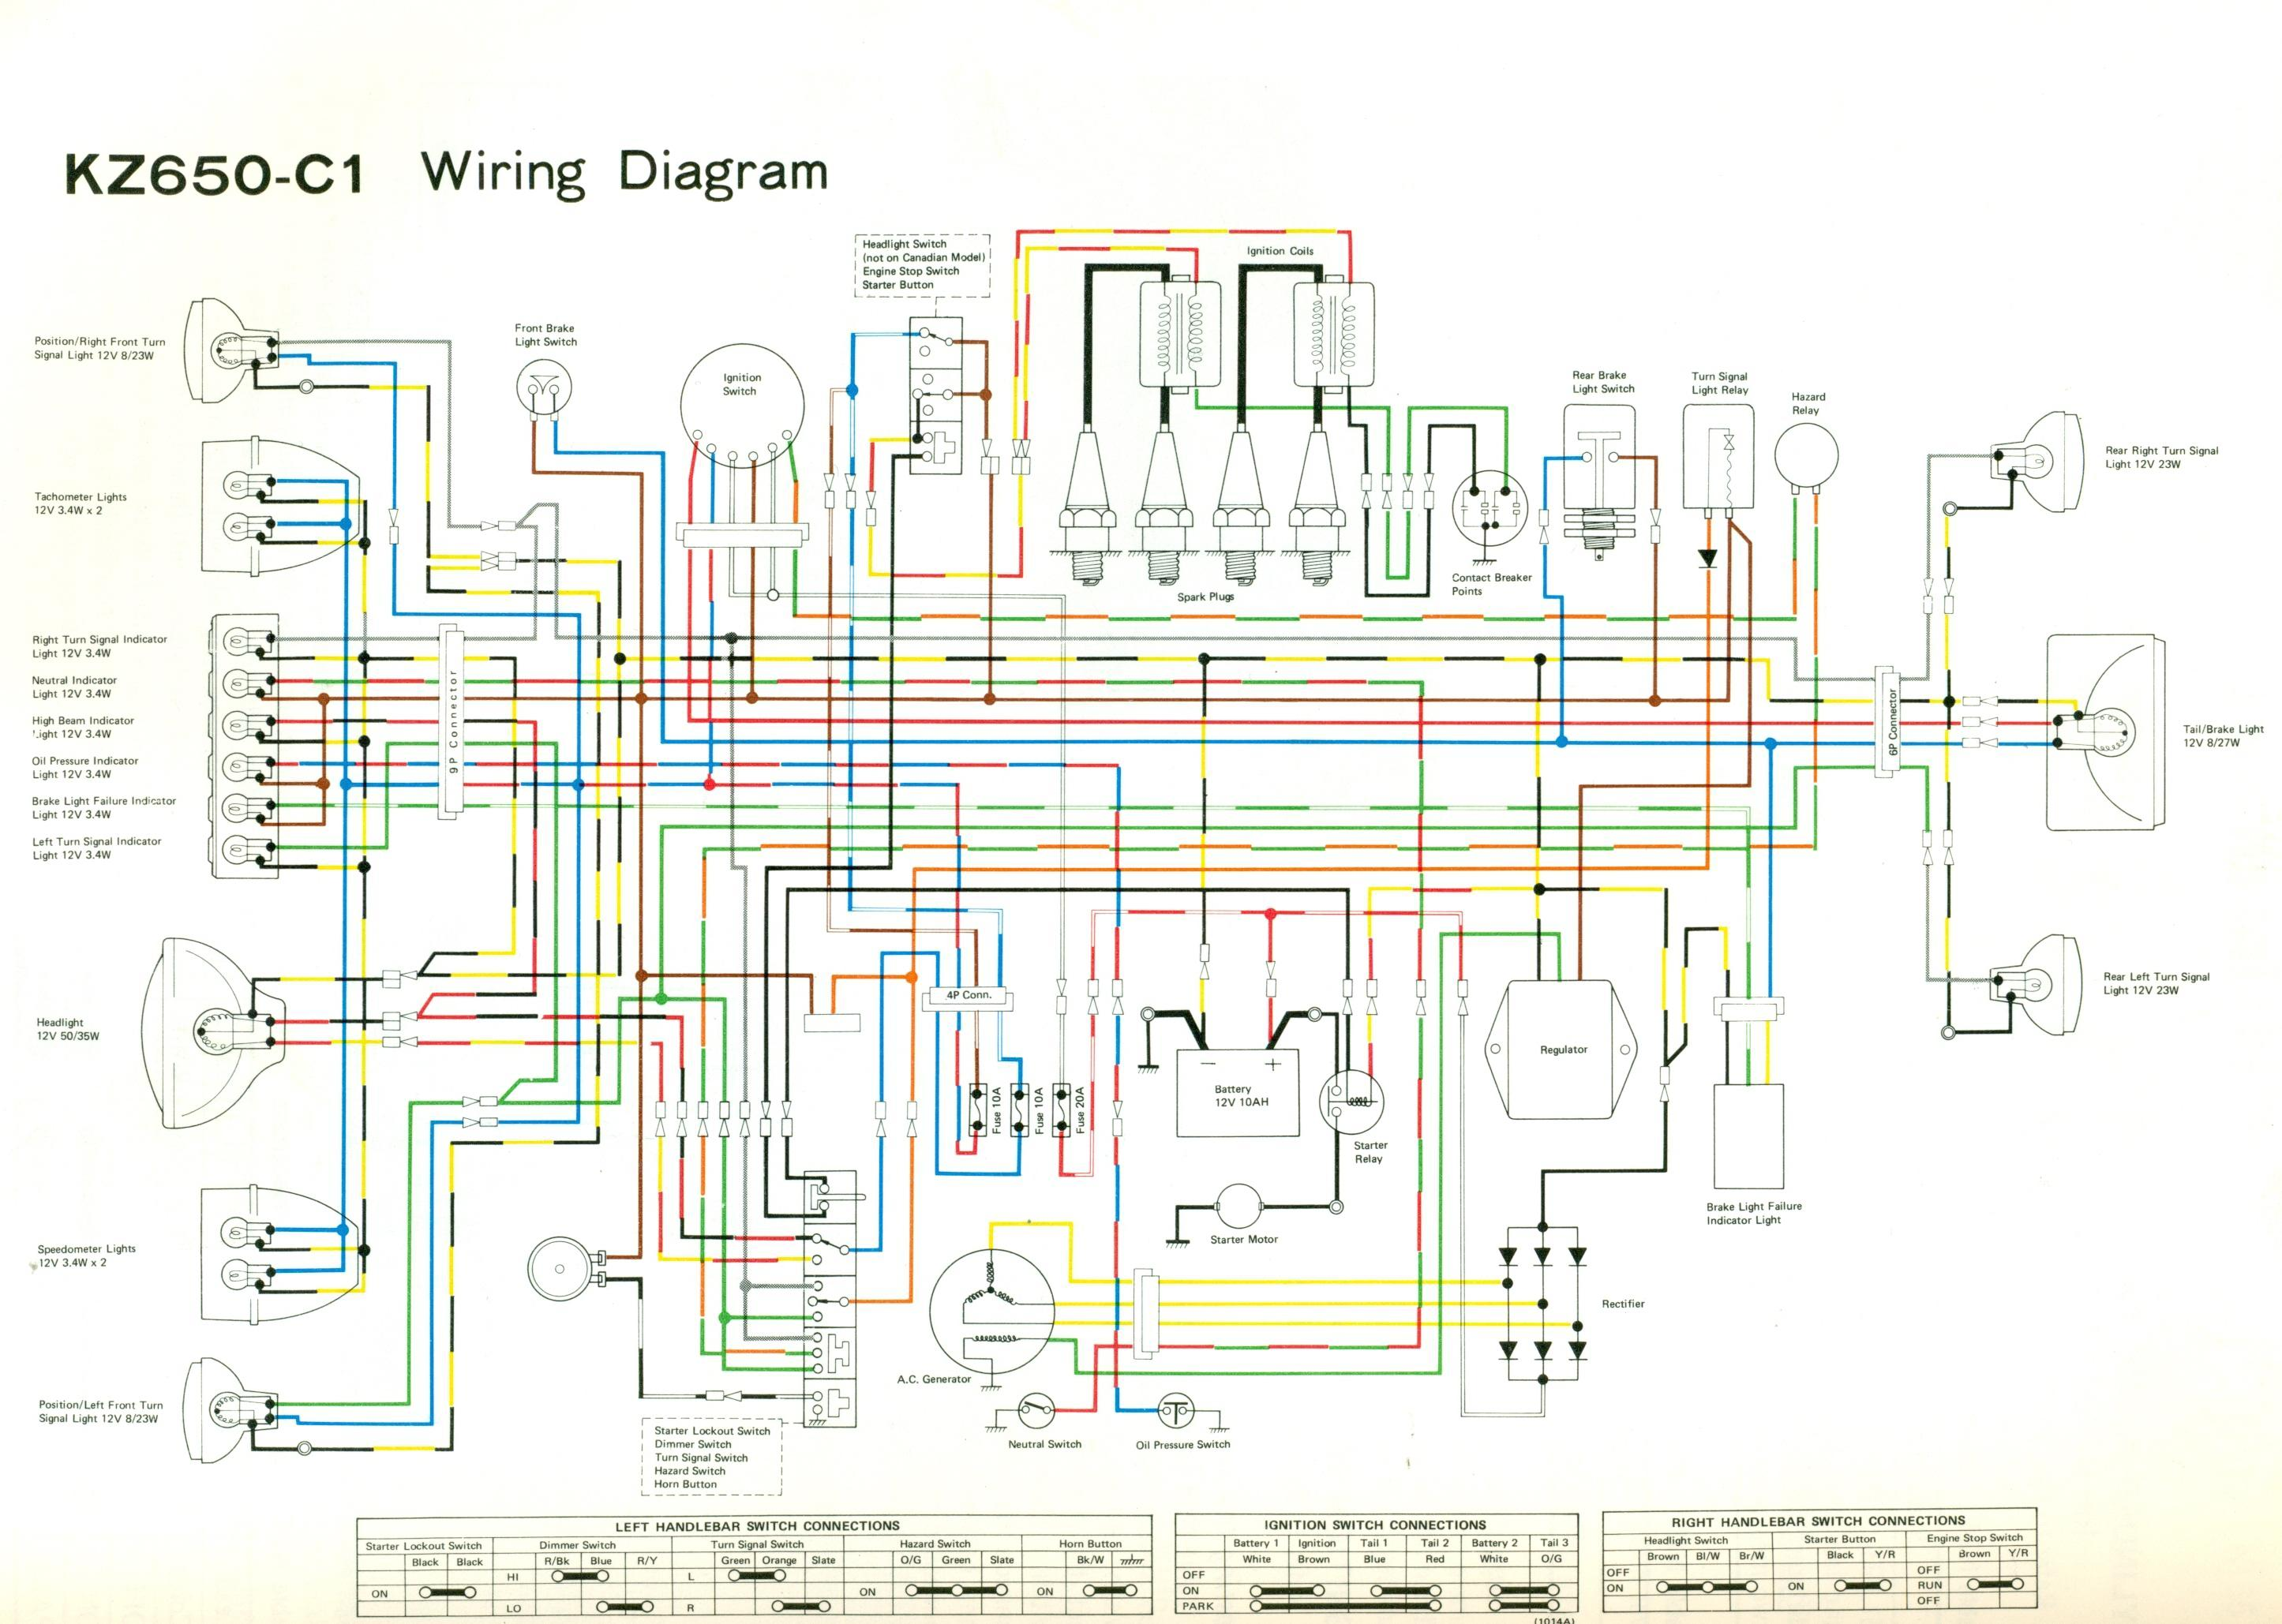 Ke100 Fuses Diagram Wiring Library 1994 Dr350 Diagrams A1 A2 1982 Kawasaki 200